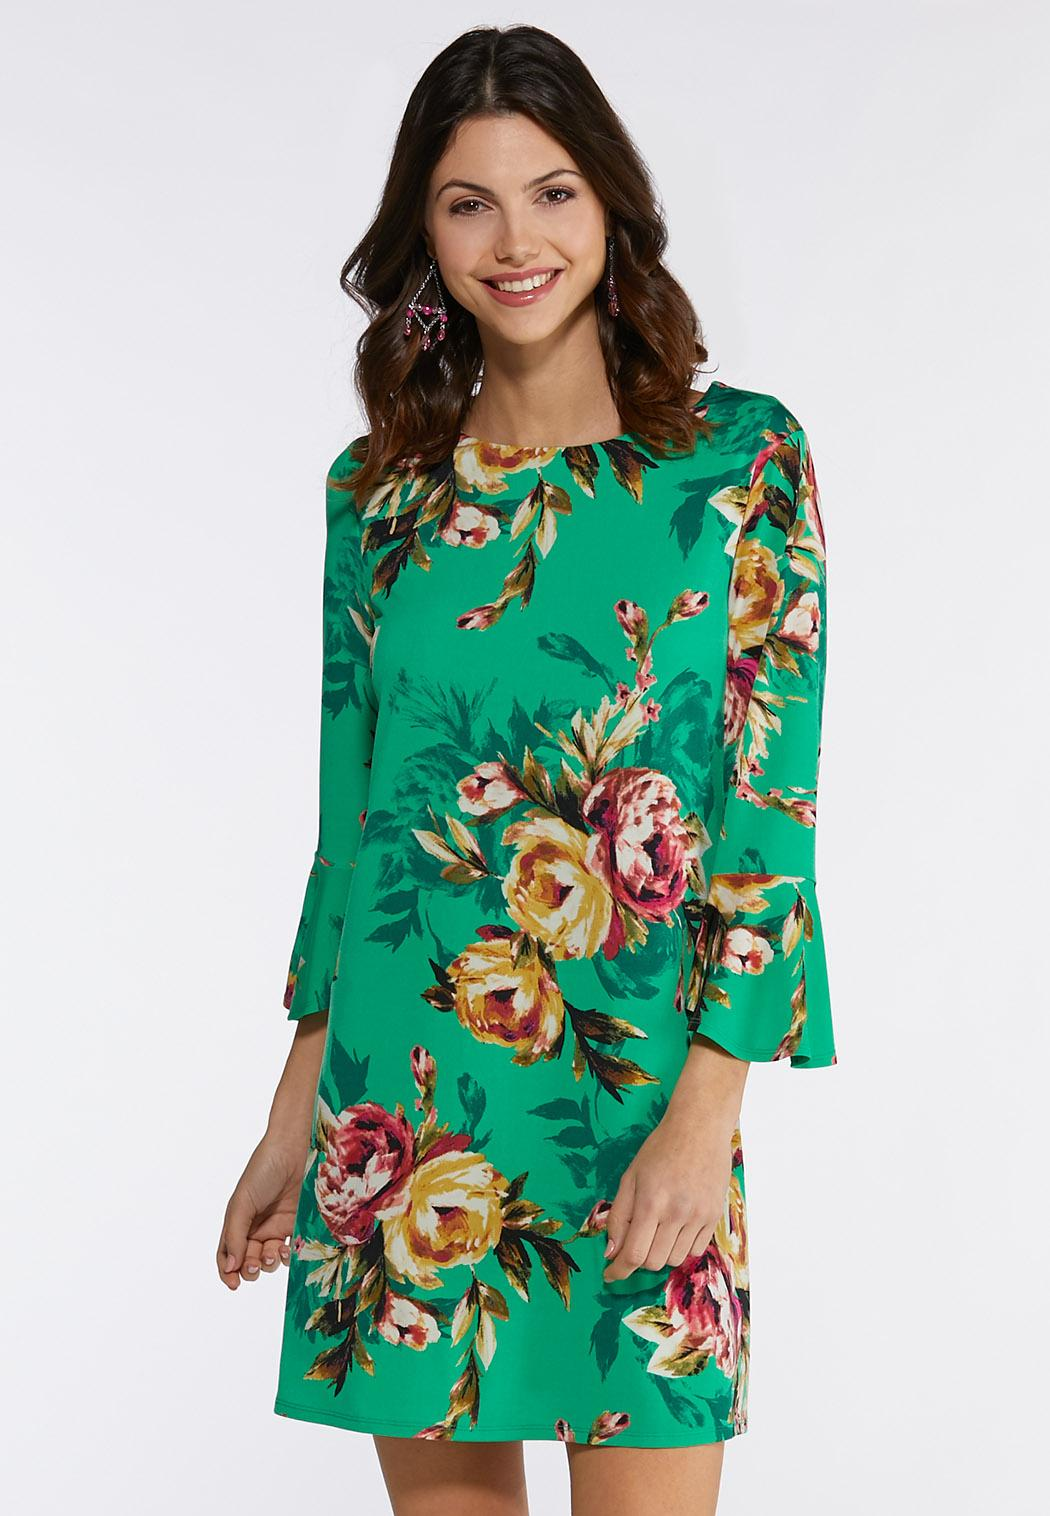 7d9246c8a9e6 Plus Size Green Floral Dress Dresses Cato Fashions